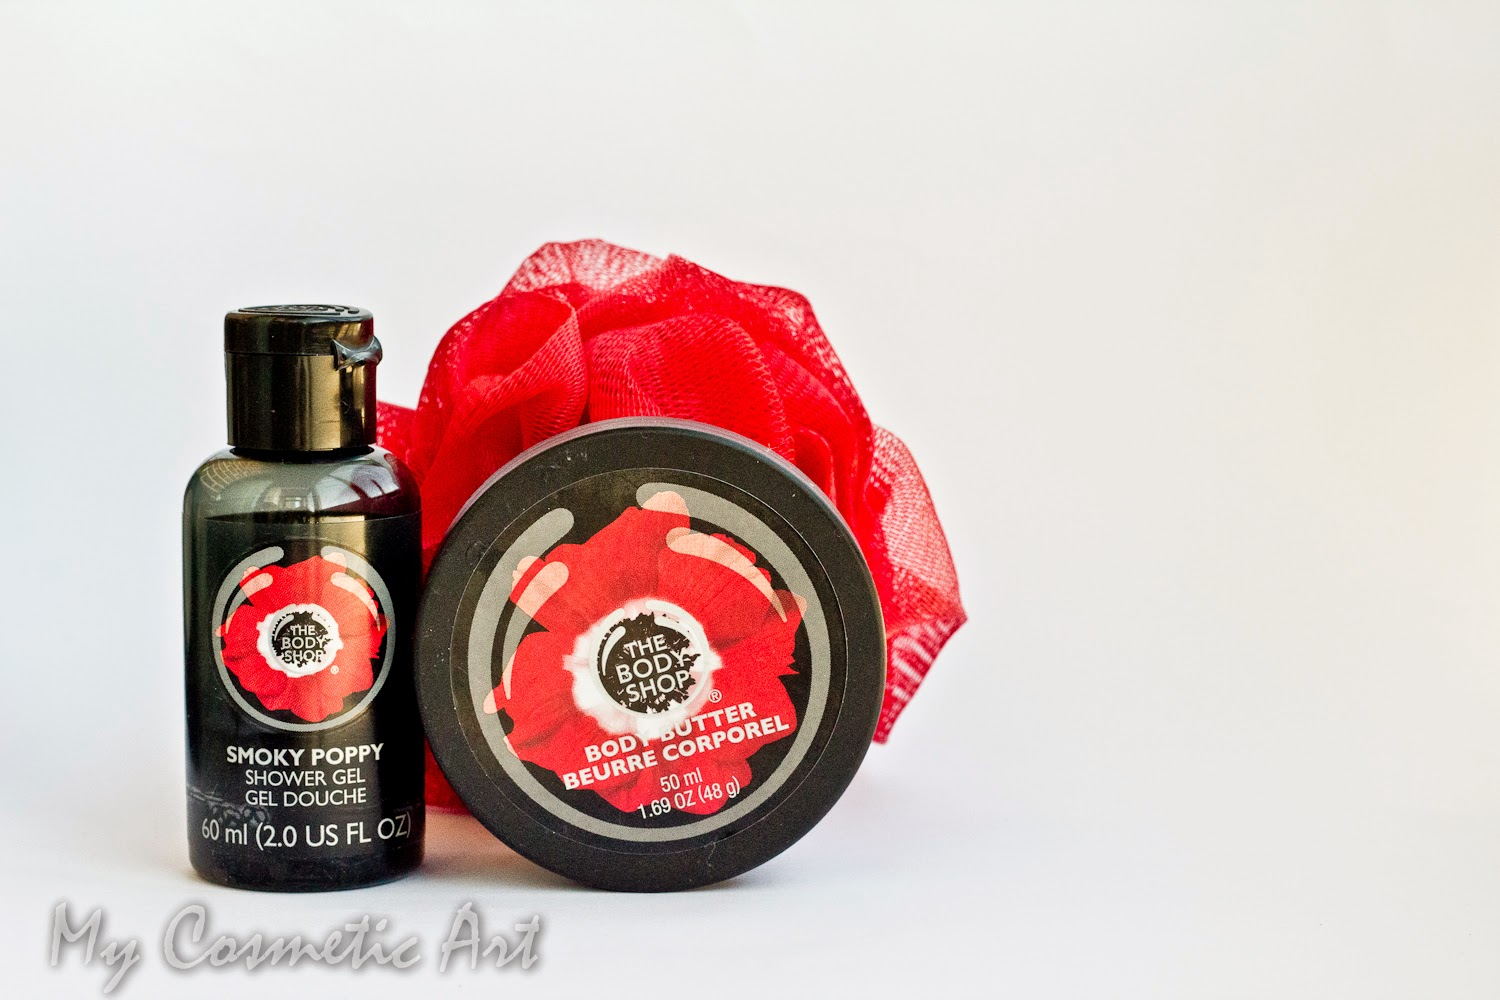 Smoky Poppy, la línea de amapola de The Body Shop